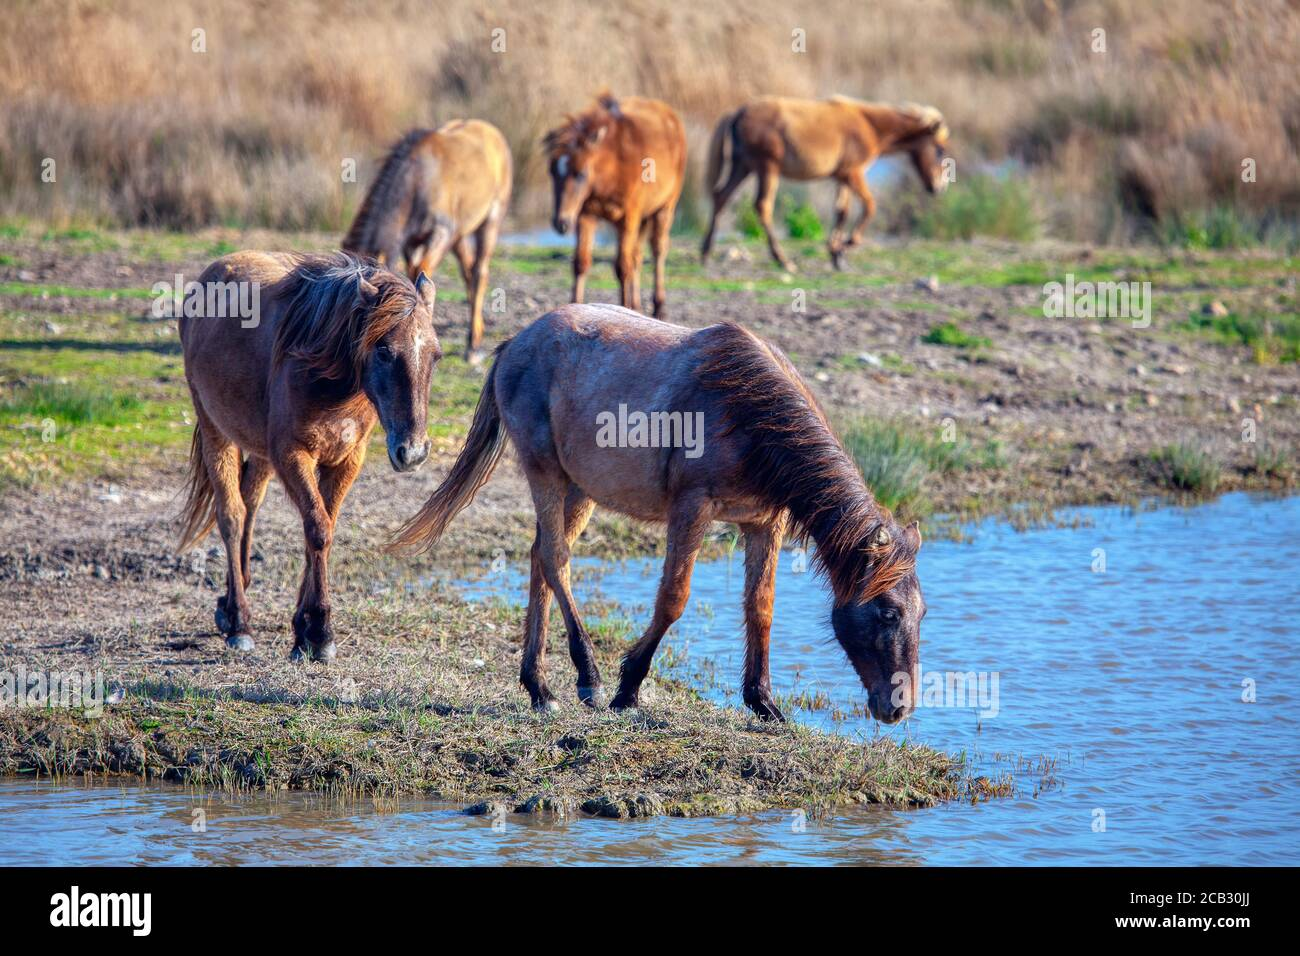 Scenery With Wild Horse Mustangs In The Wild Stock Photo Alamy